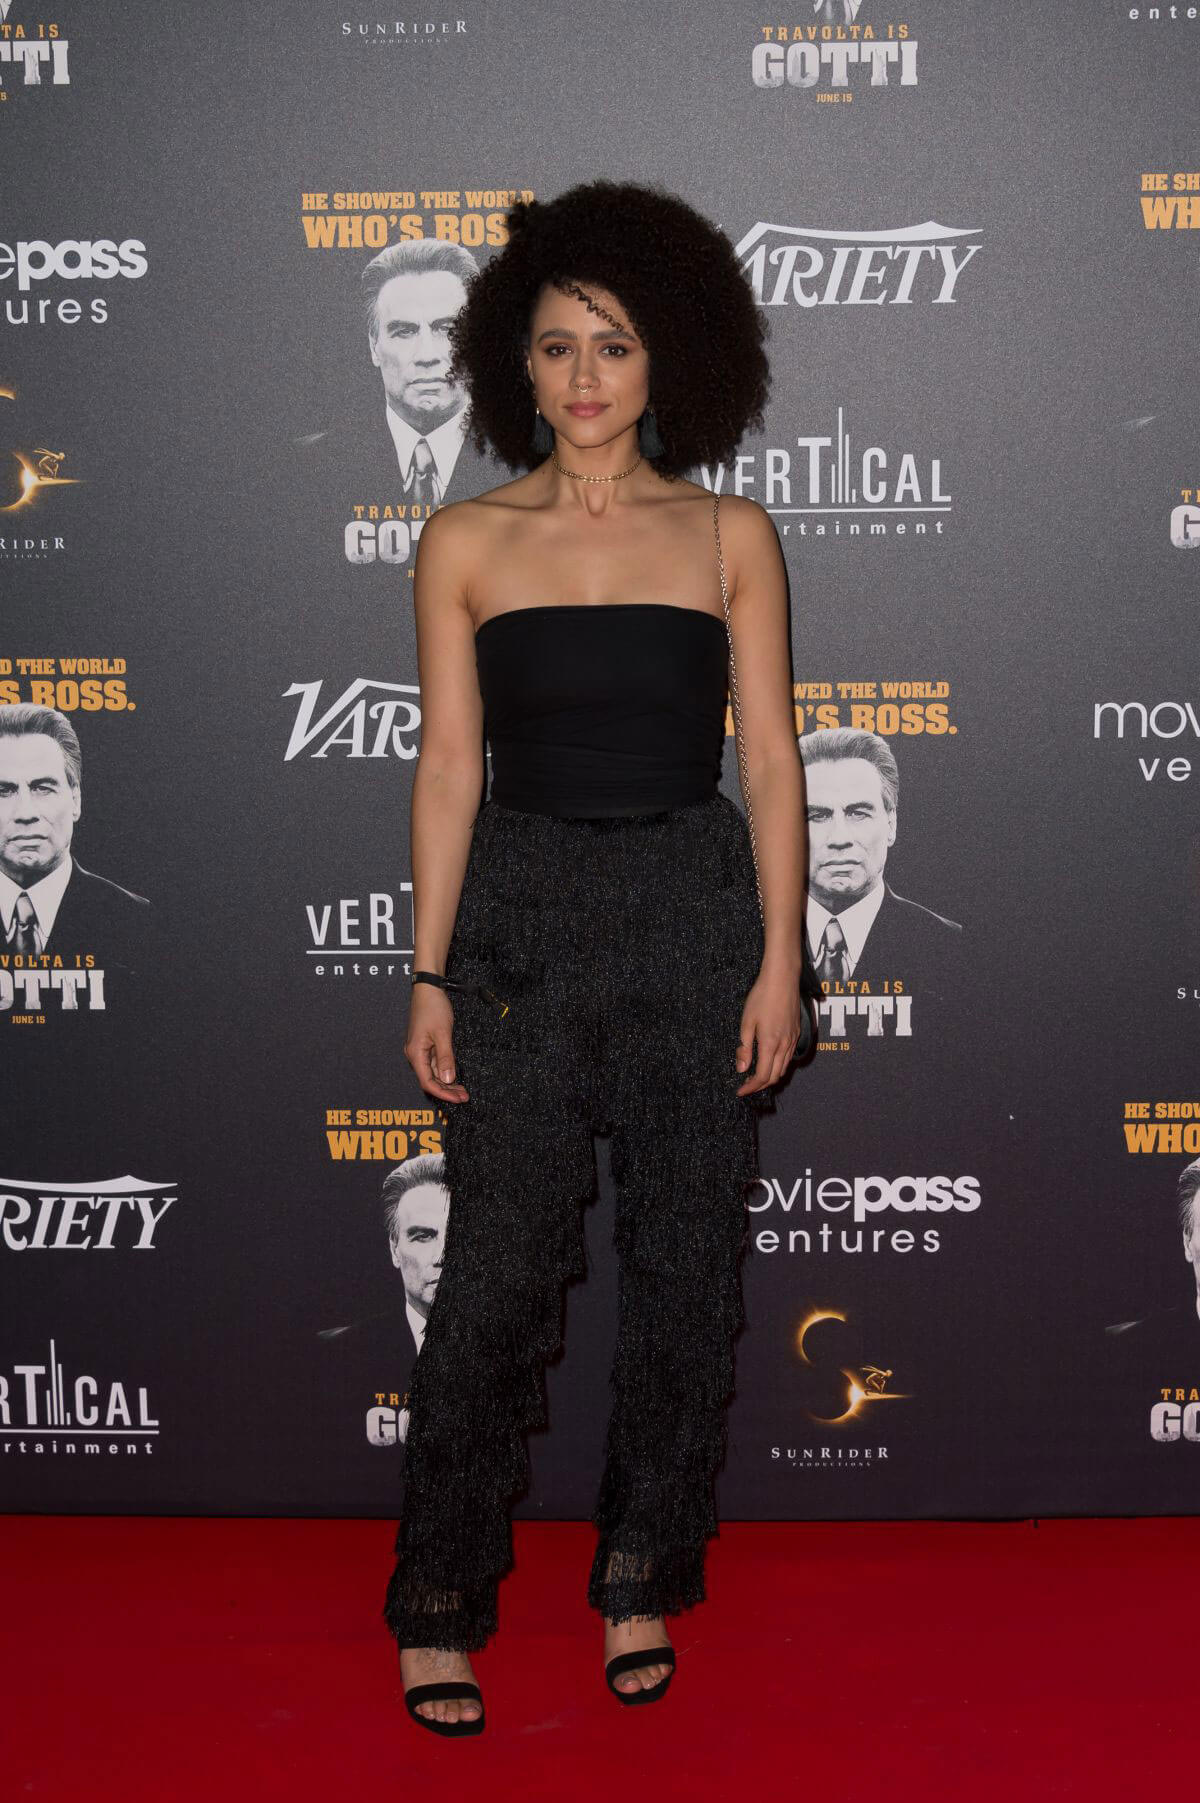 Nathalie Emmanuel at Gotti Premiere Afterparty in Cannes 2018/05/15 1